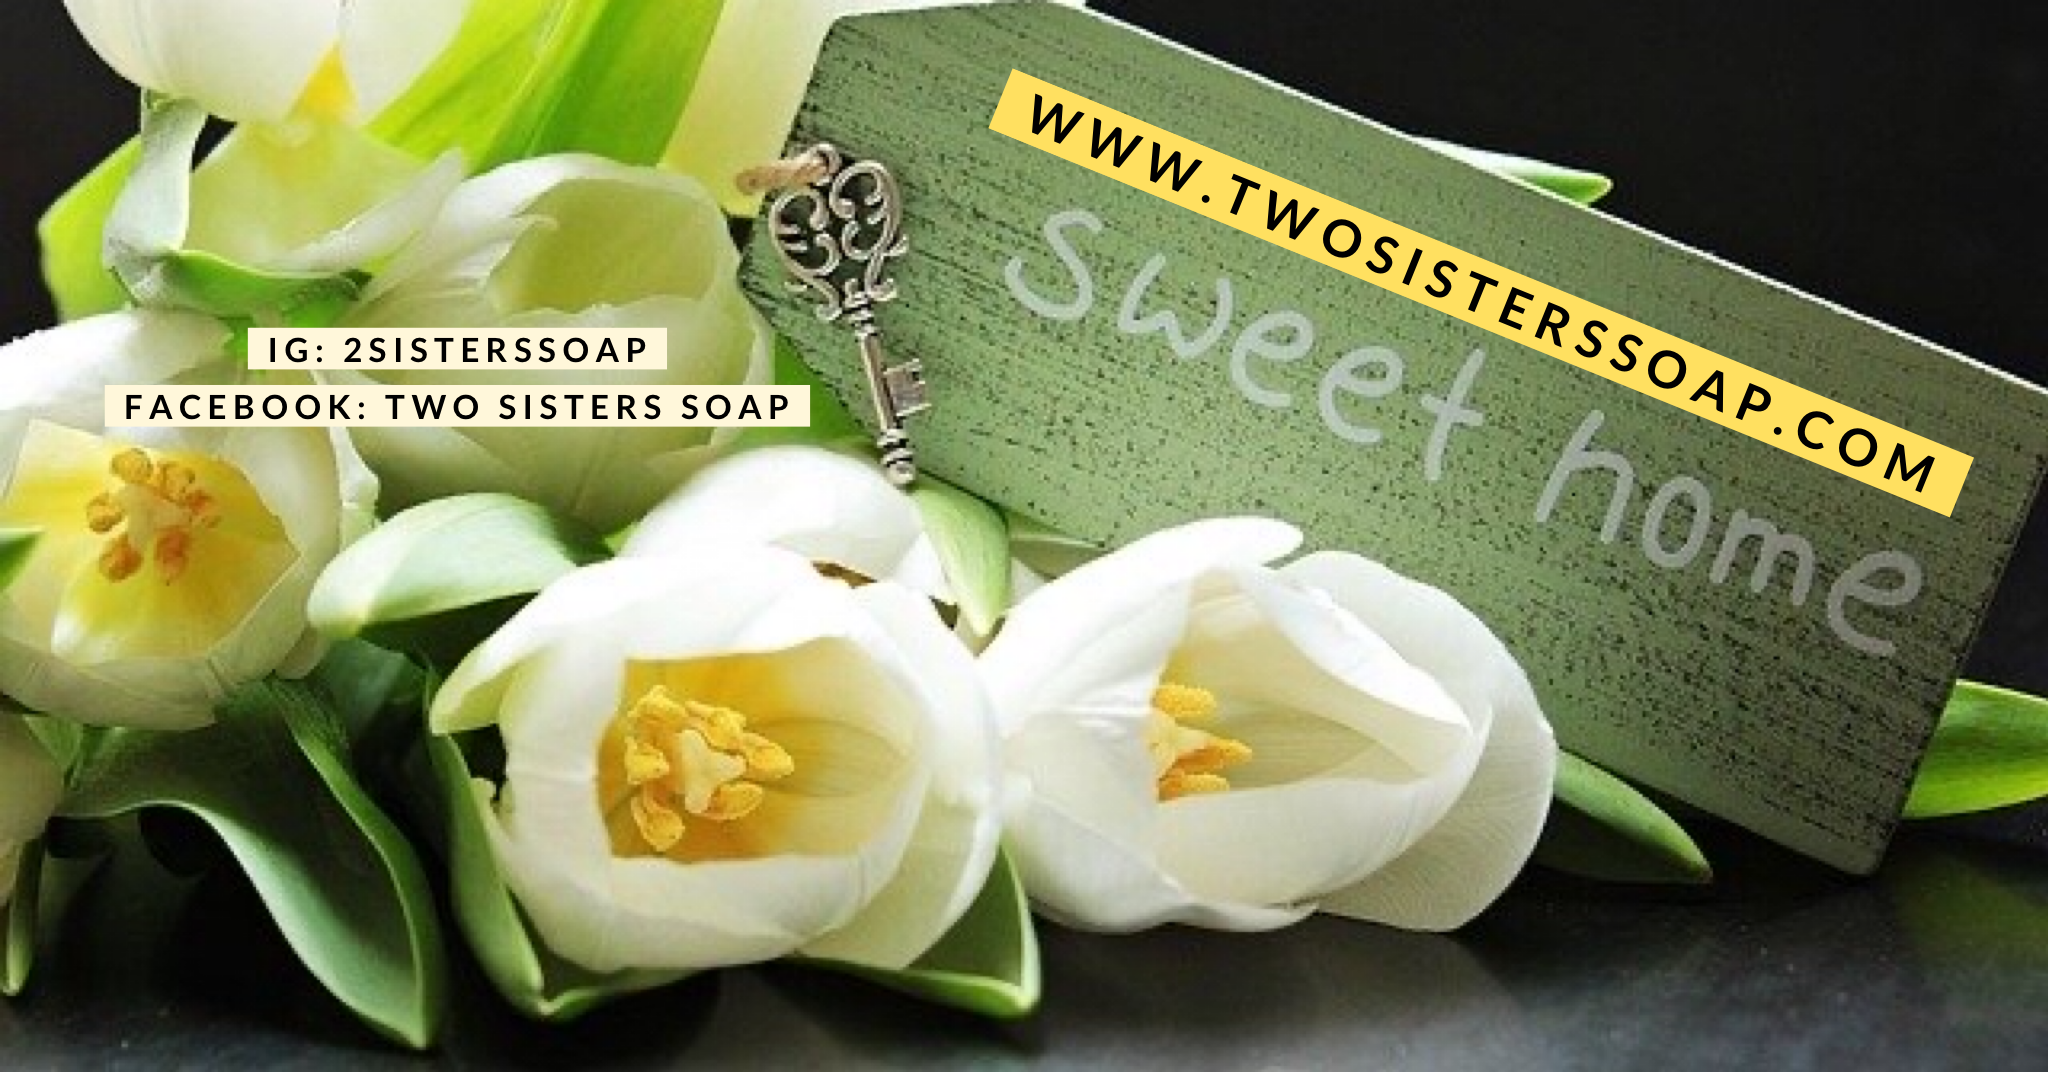 Sweet Home Two Sisters Soap Gift Card